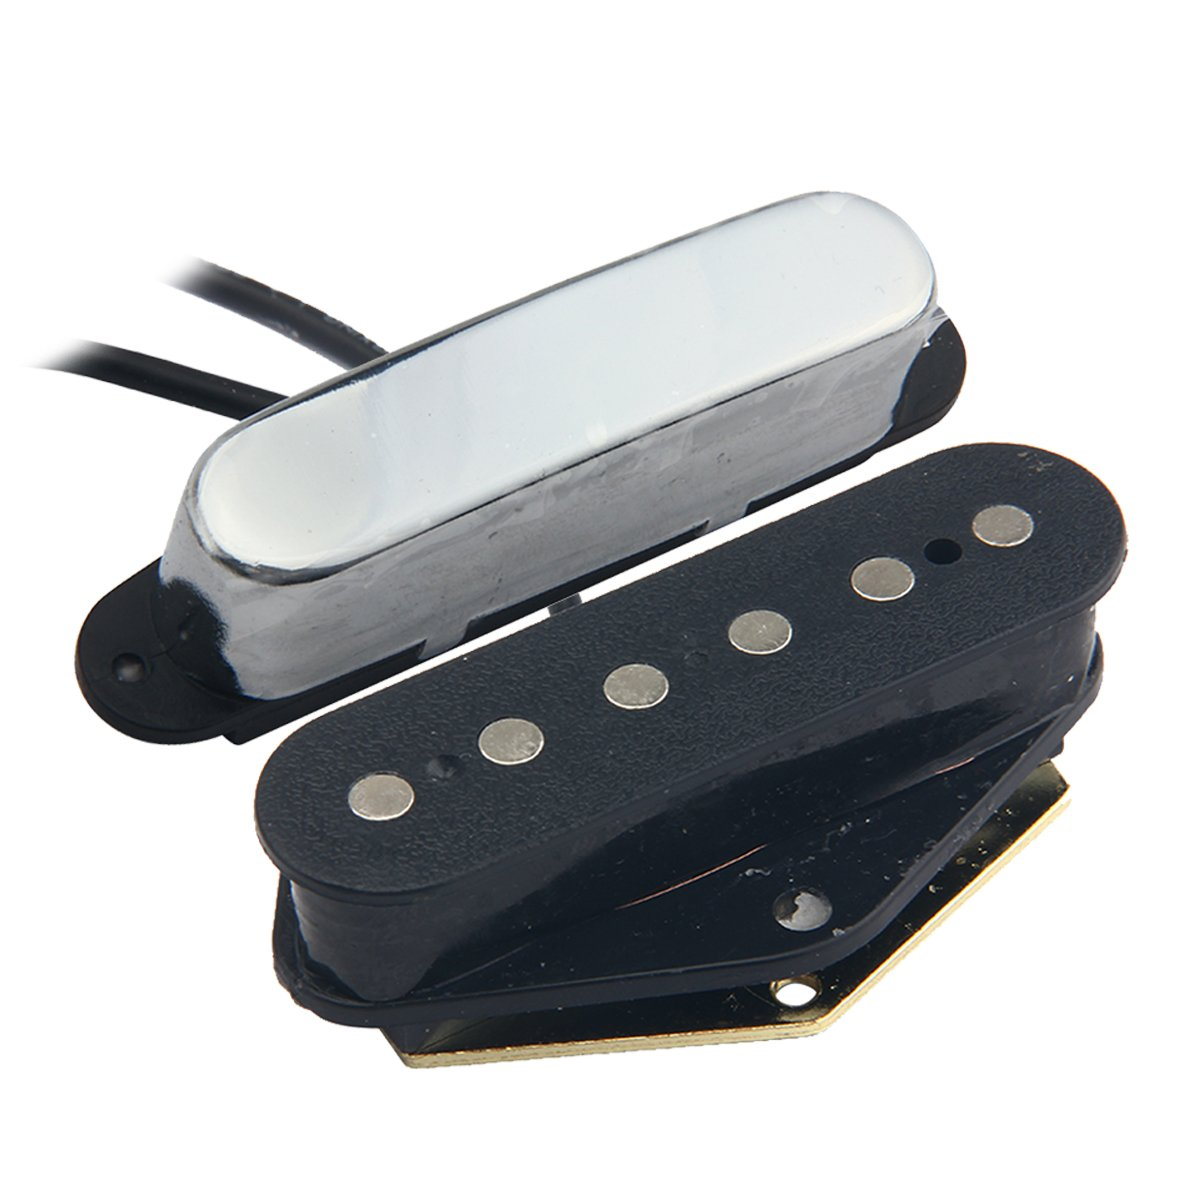 Kmise MI0164 Electric Guitar Pickup Bridge & Neck Pickup for Tele Style